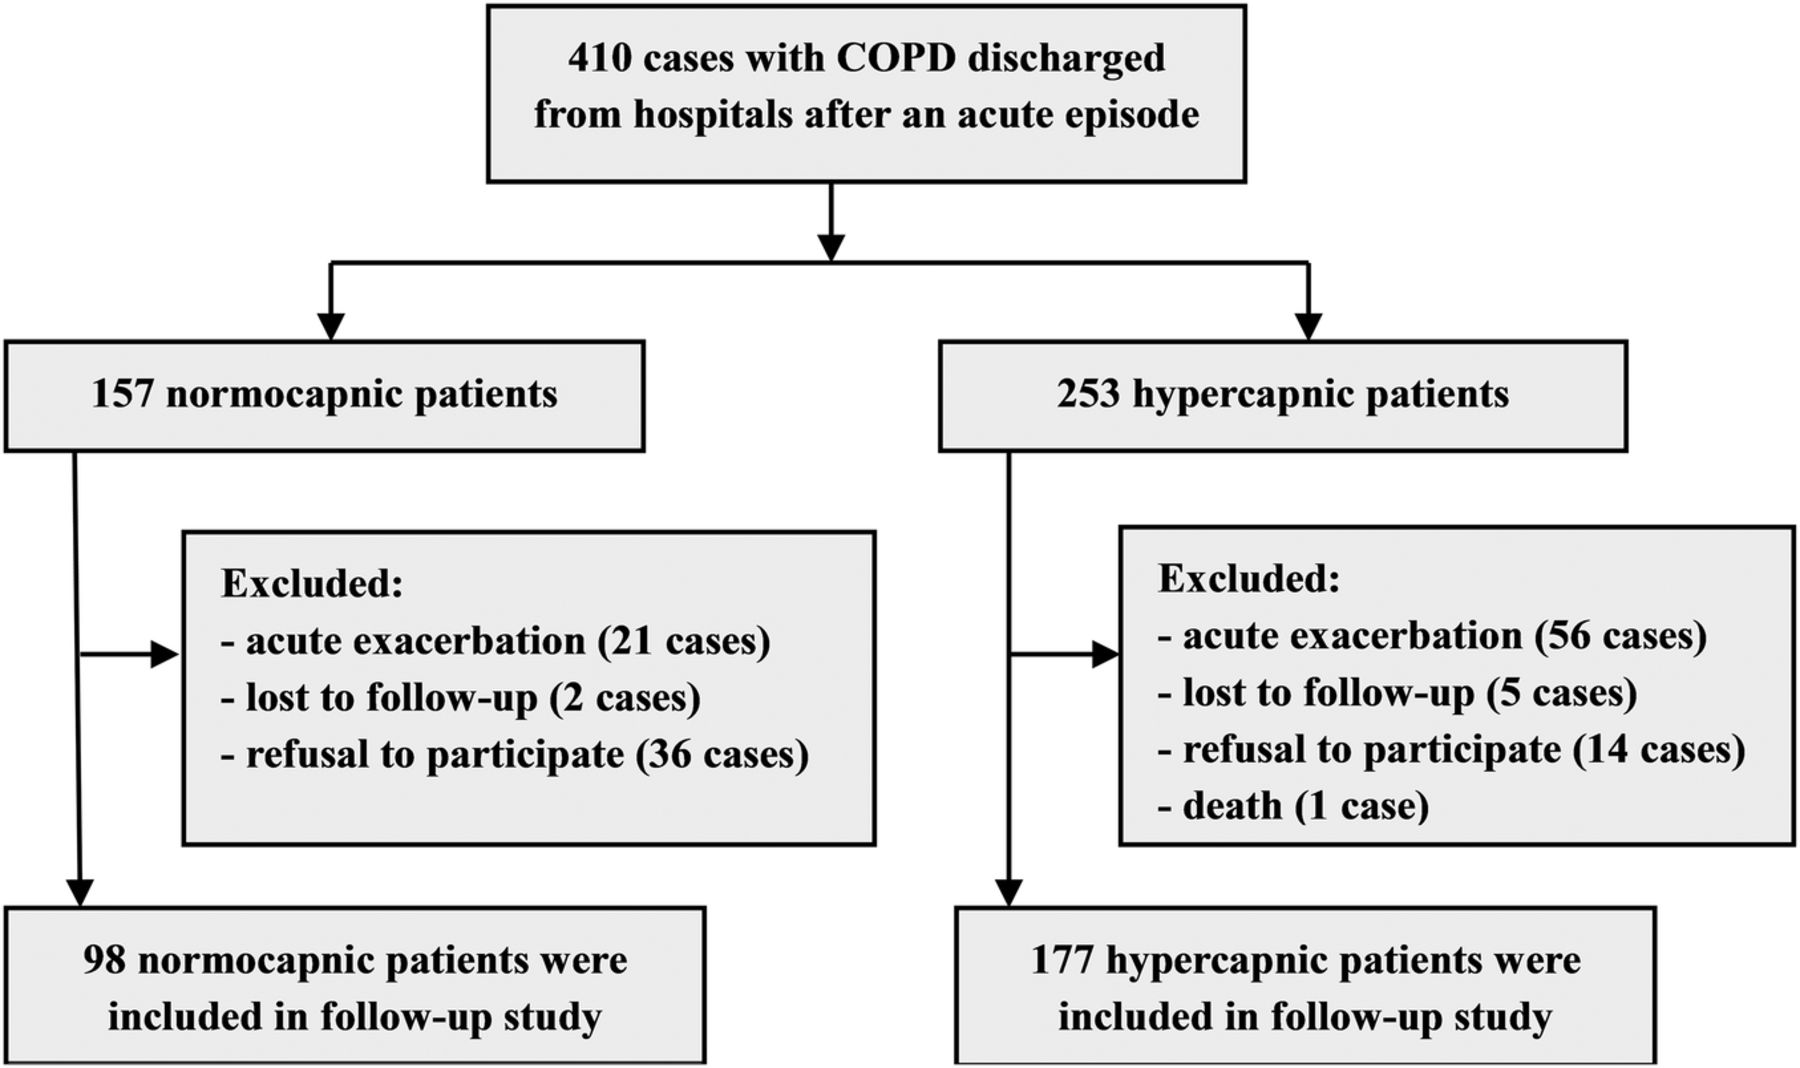 a case study on chronic obstructive Learn about chronic obstructive pulmonary disease, copd prognosis, and management of copd disease and end-stage copd you are leaving medscape education cancel continue news & perspective antipsychotics and respiratory failure in patients with copd in a large taiwanese database study.